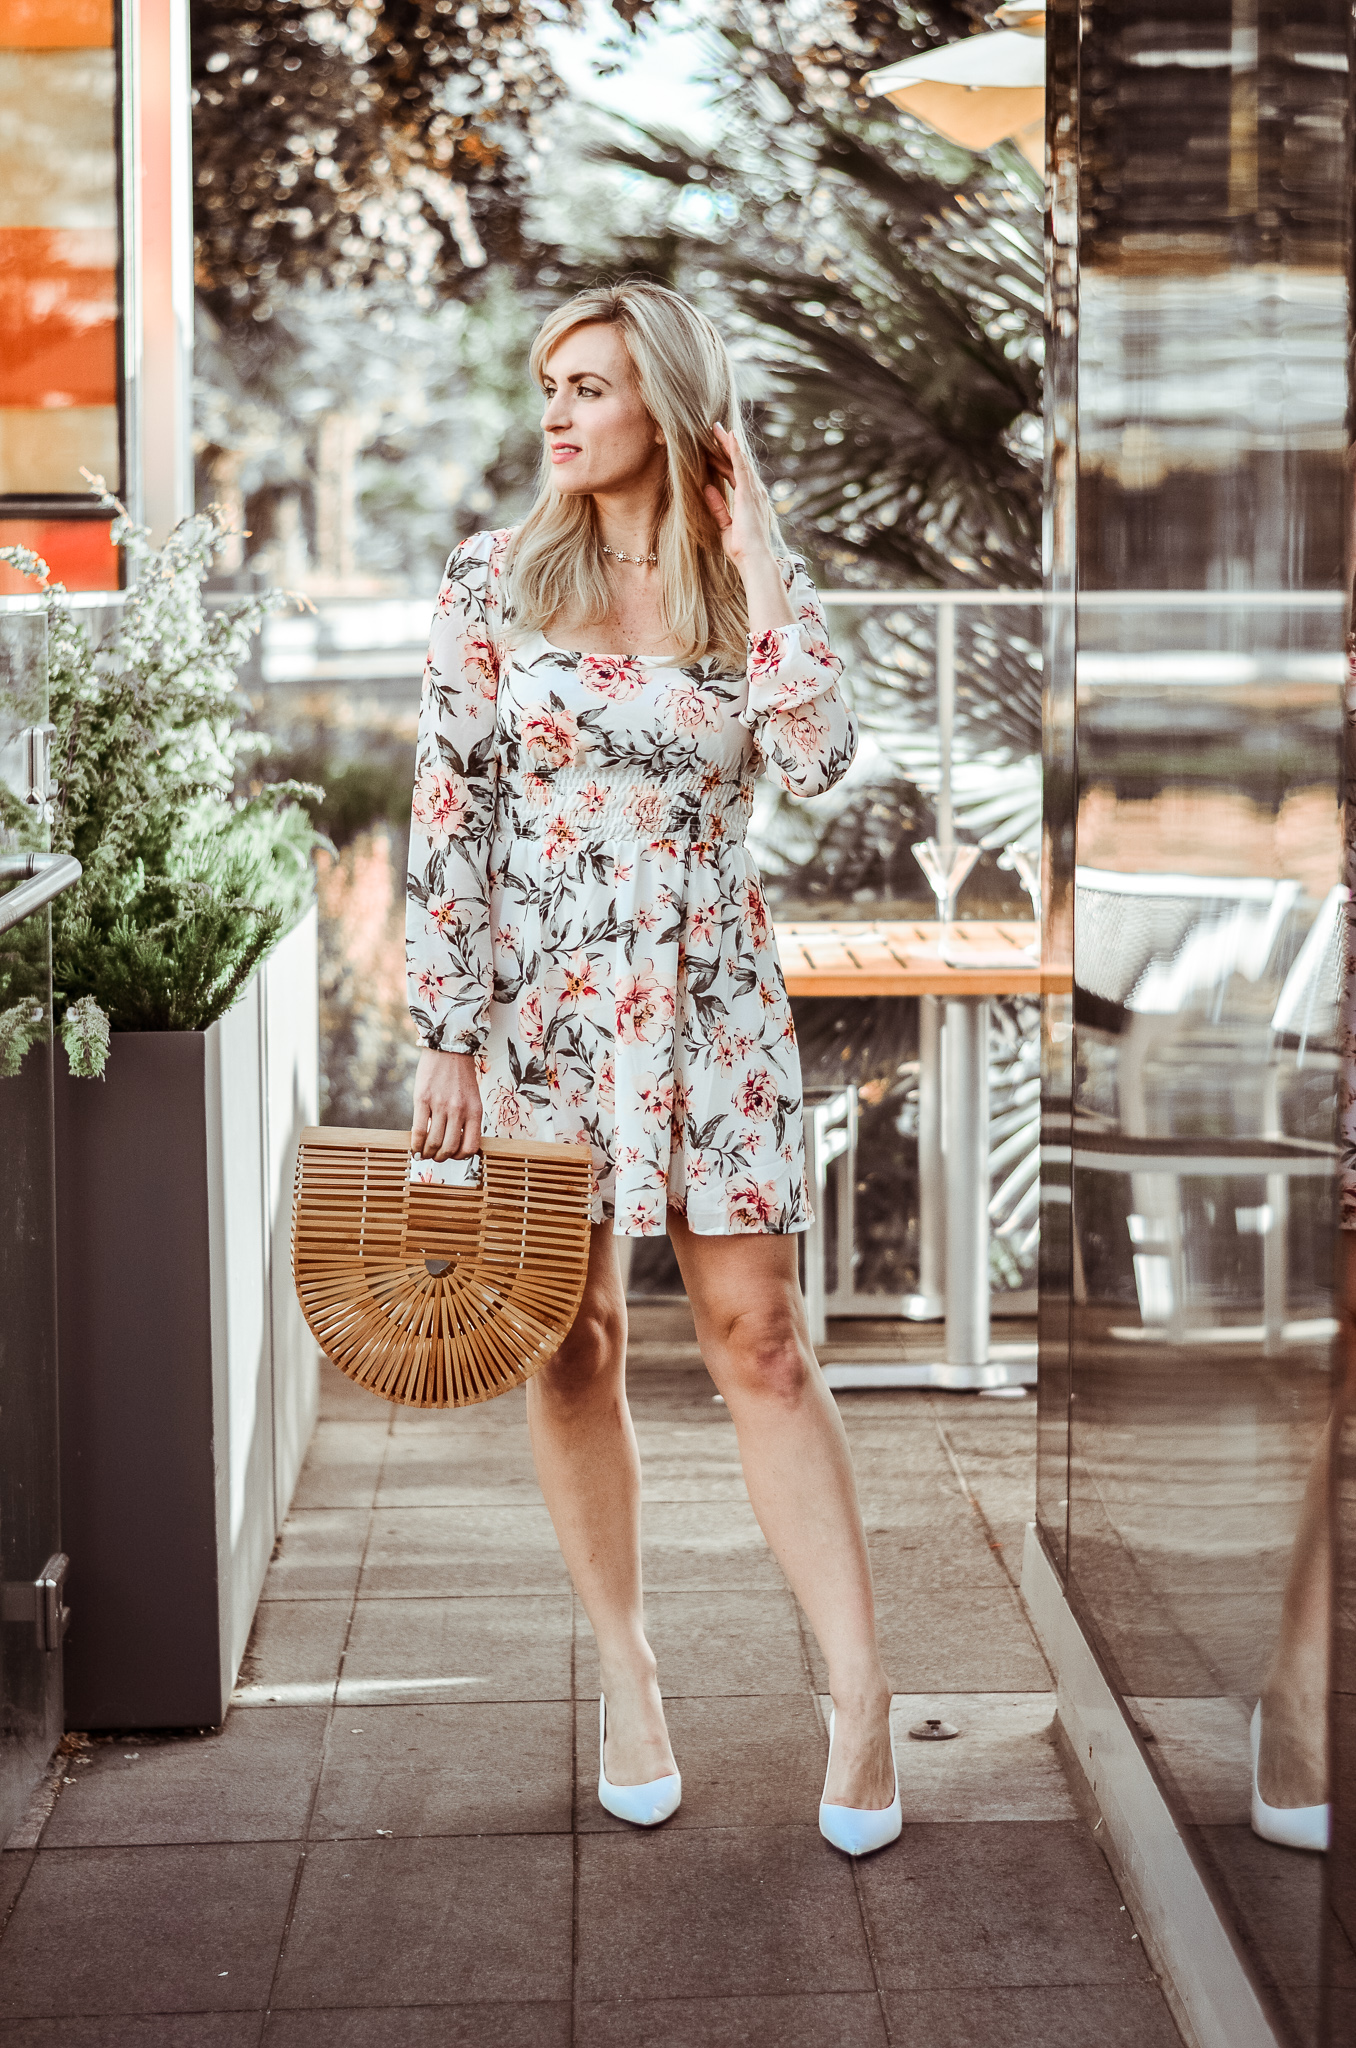 blonde blogger legallee blonde wearing a floral long sleeve mini dress and a bamboo handbag